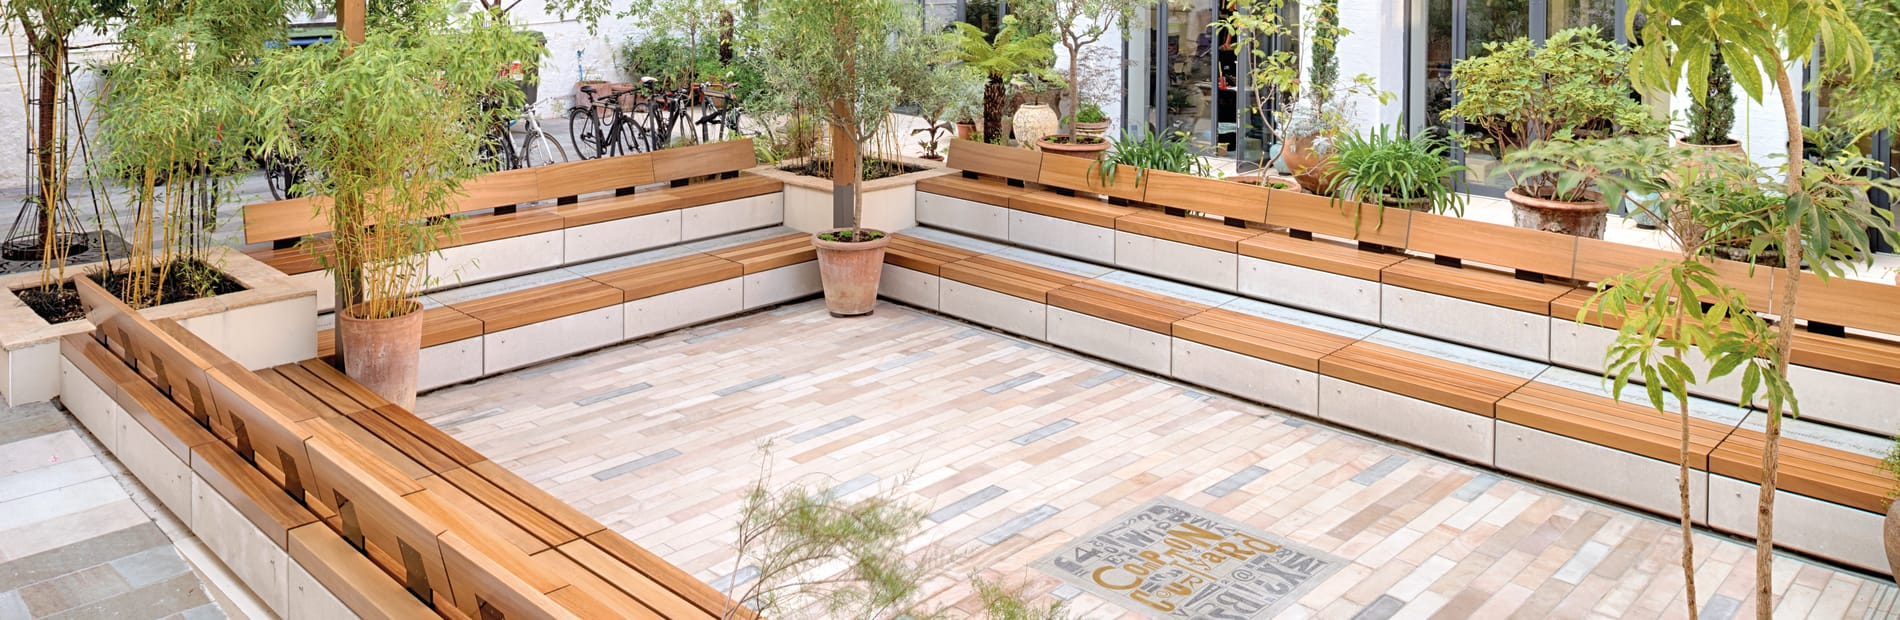 Marshalls London Design Space courtyard featuring benches and plants